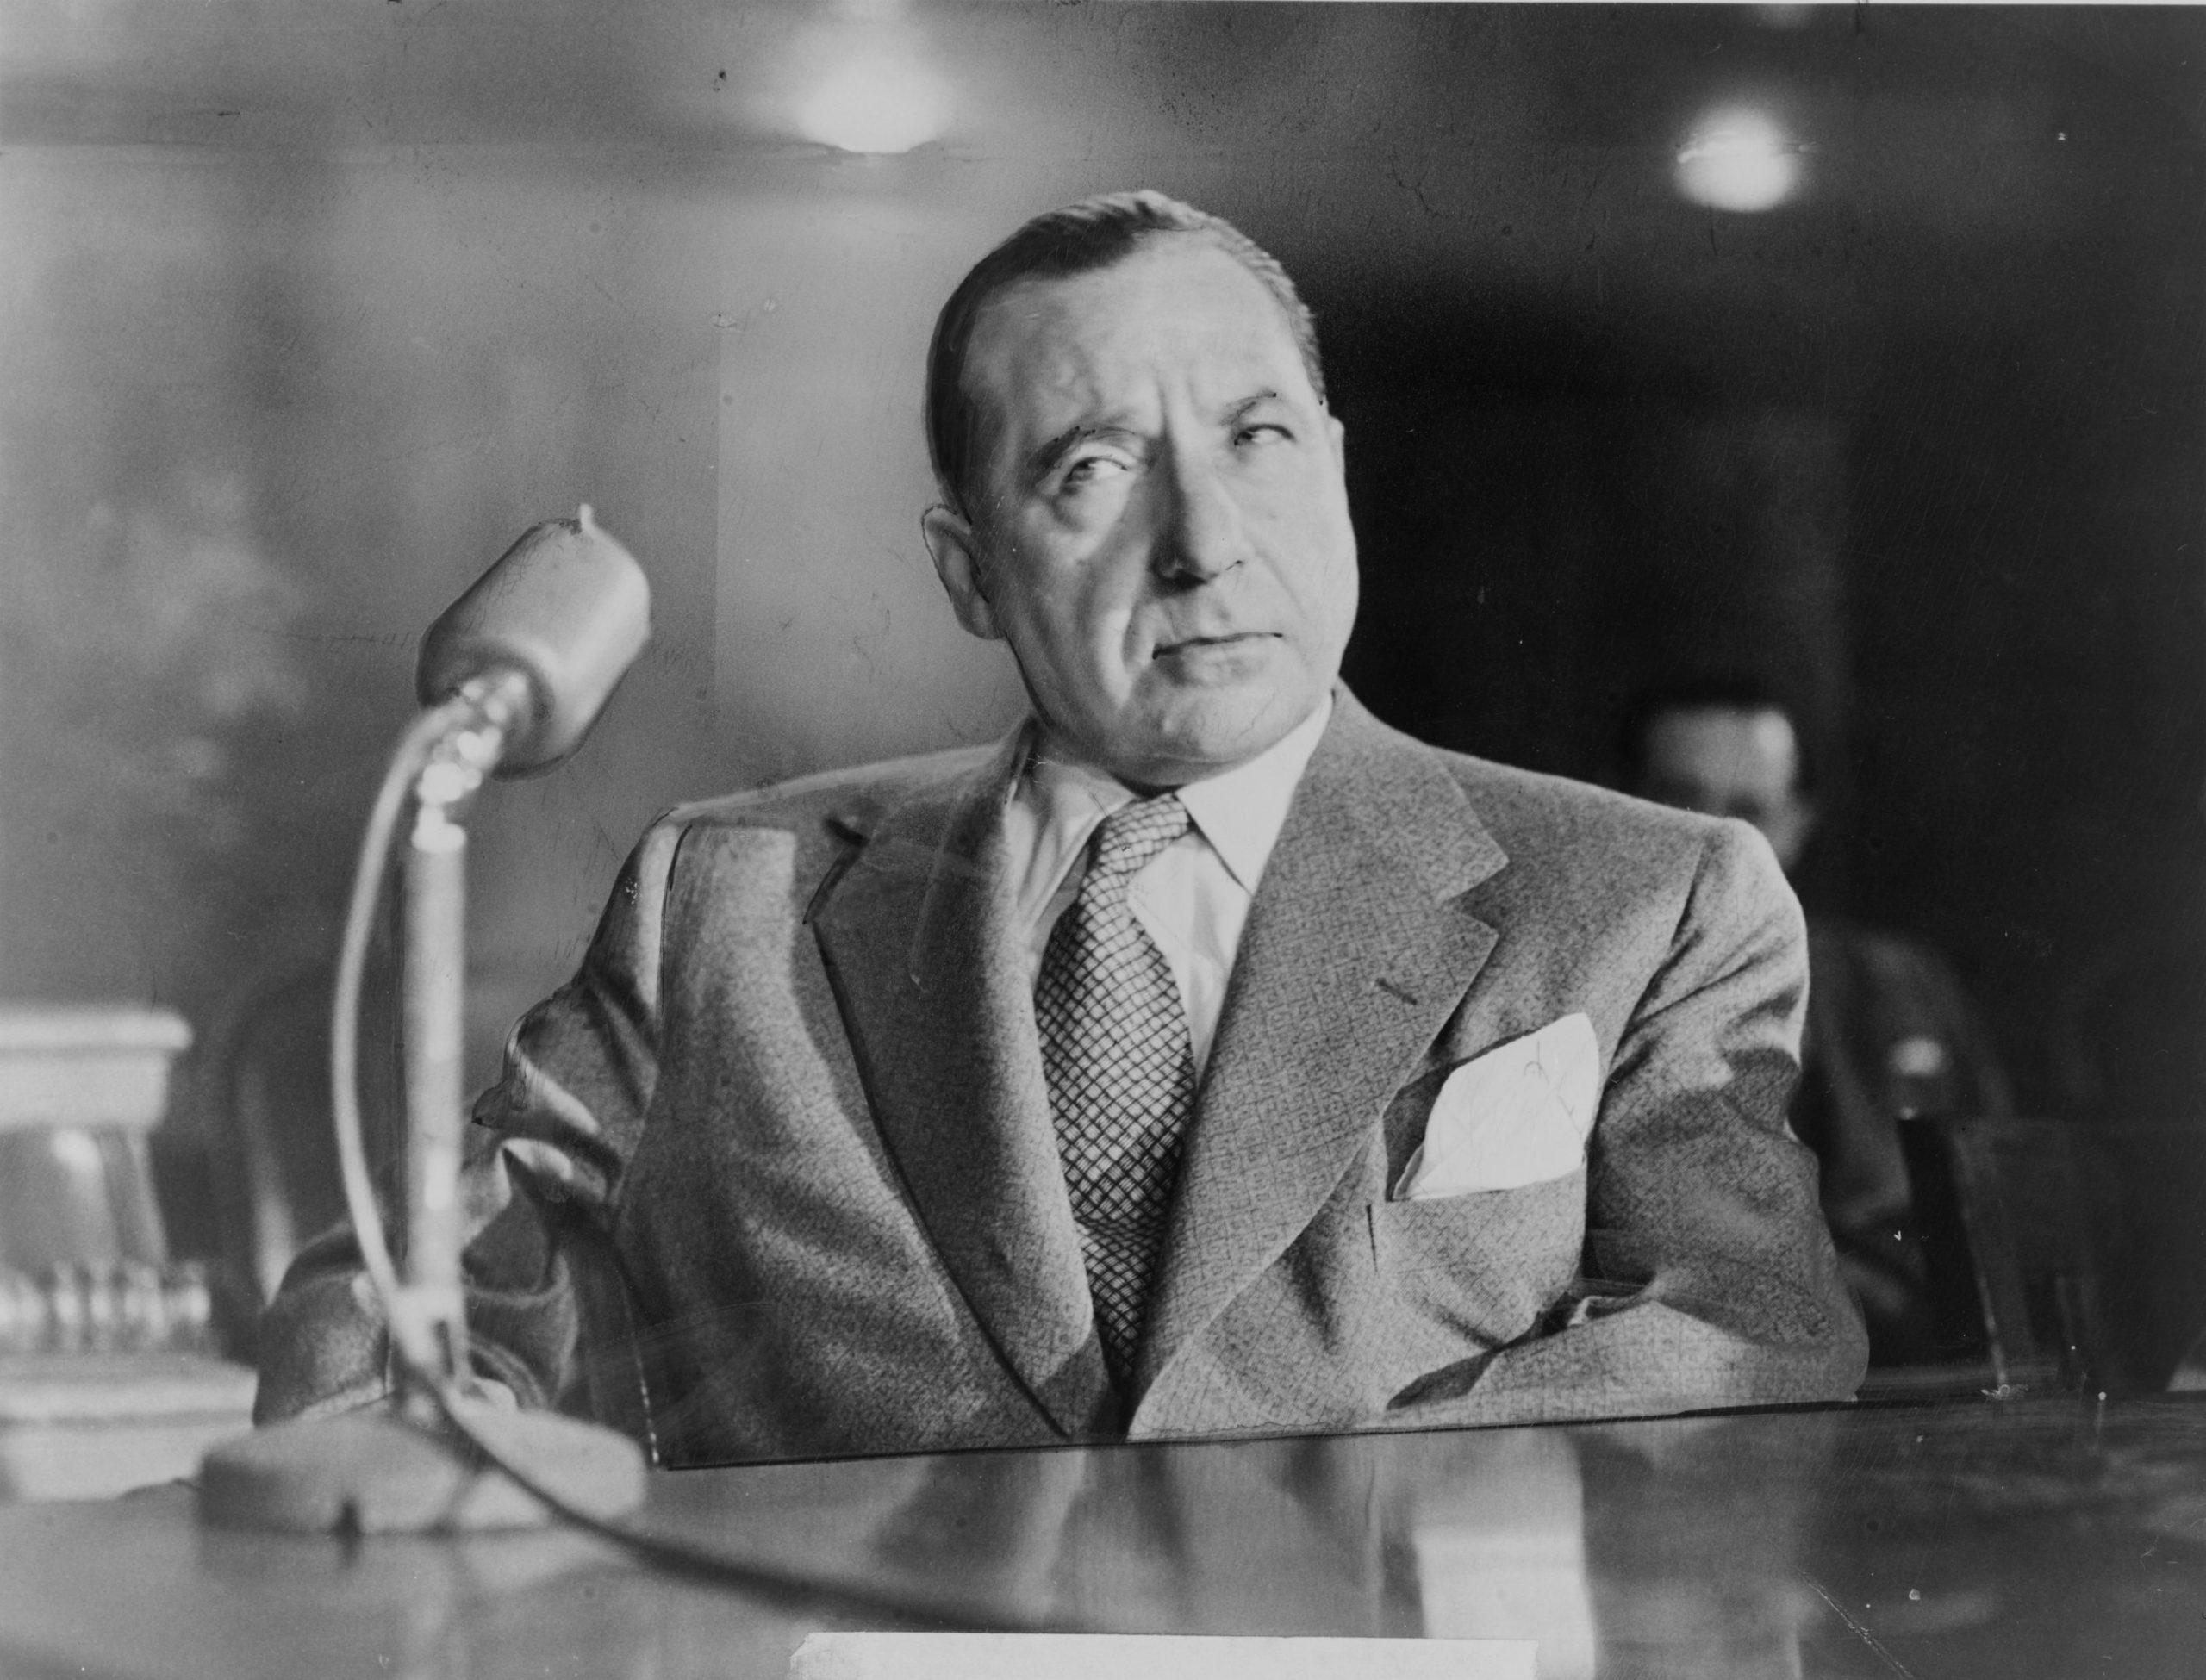 American mobster Frank Costello in 1951 testifying before the Kefauver Committee investigating organized crime.